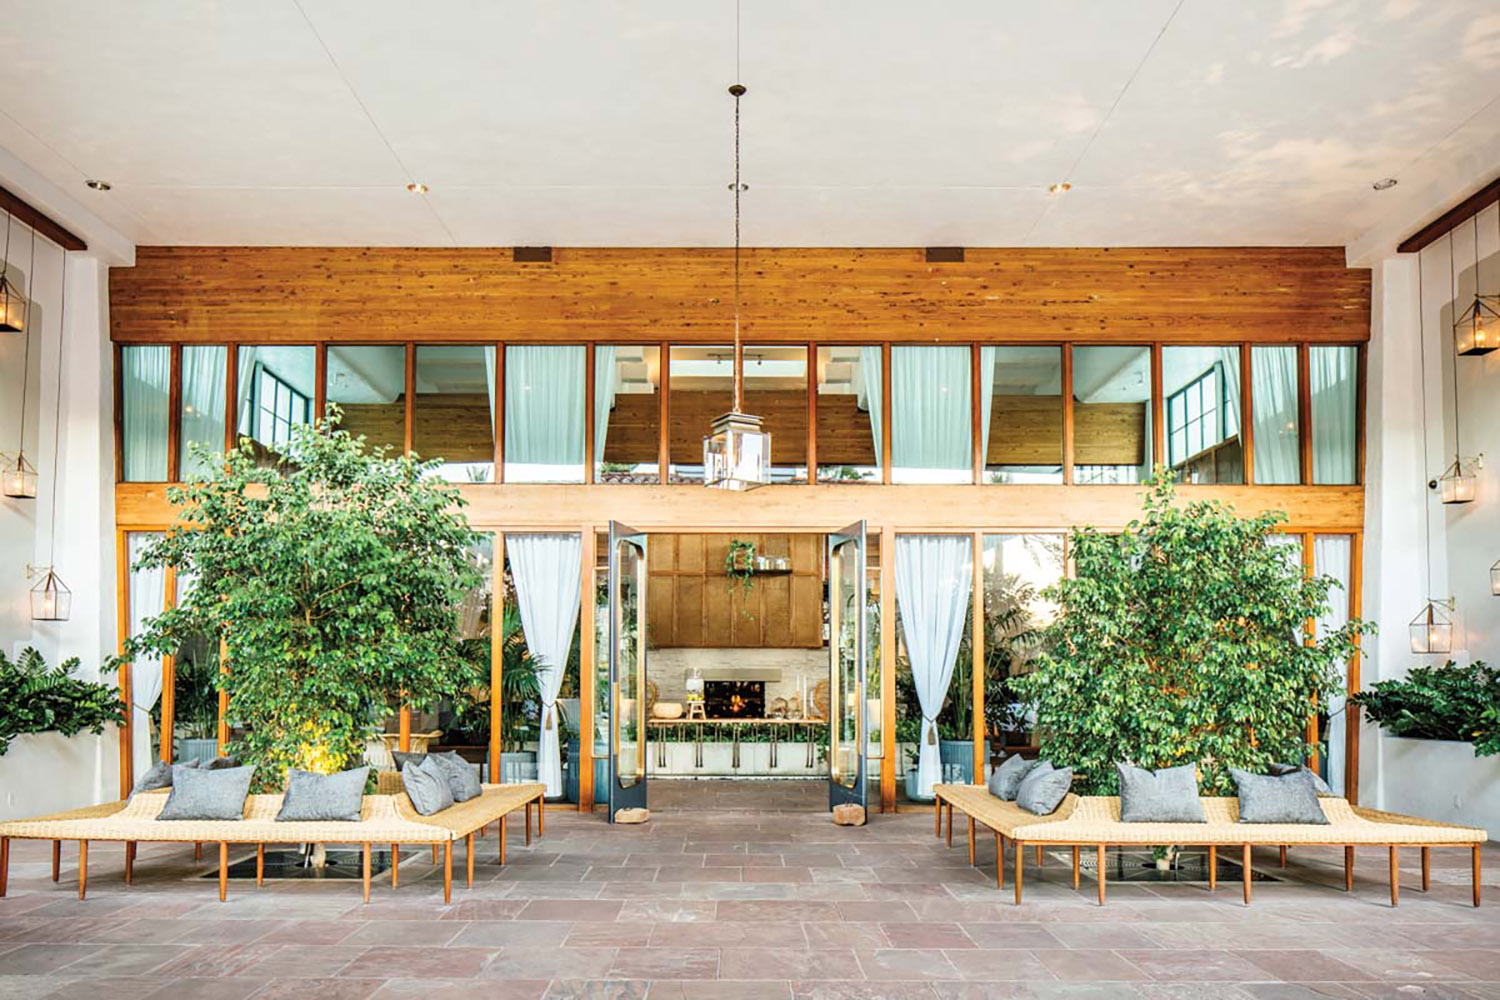 Resort entrance with wood accents, large windows and greenery.